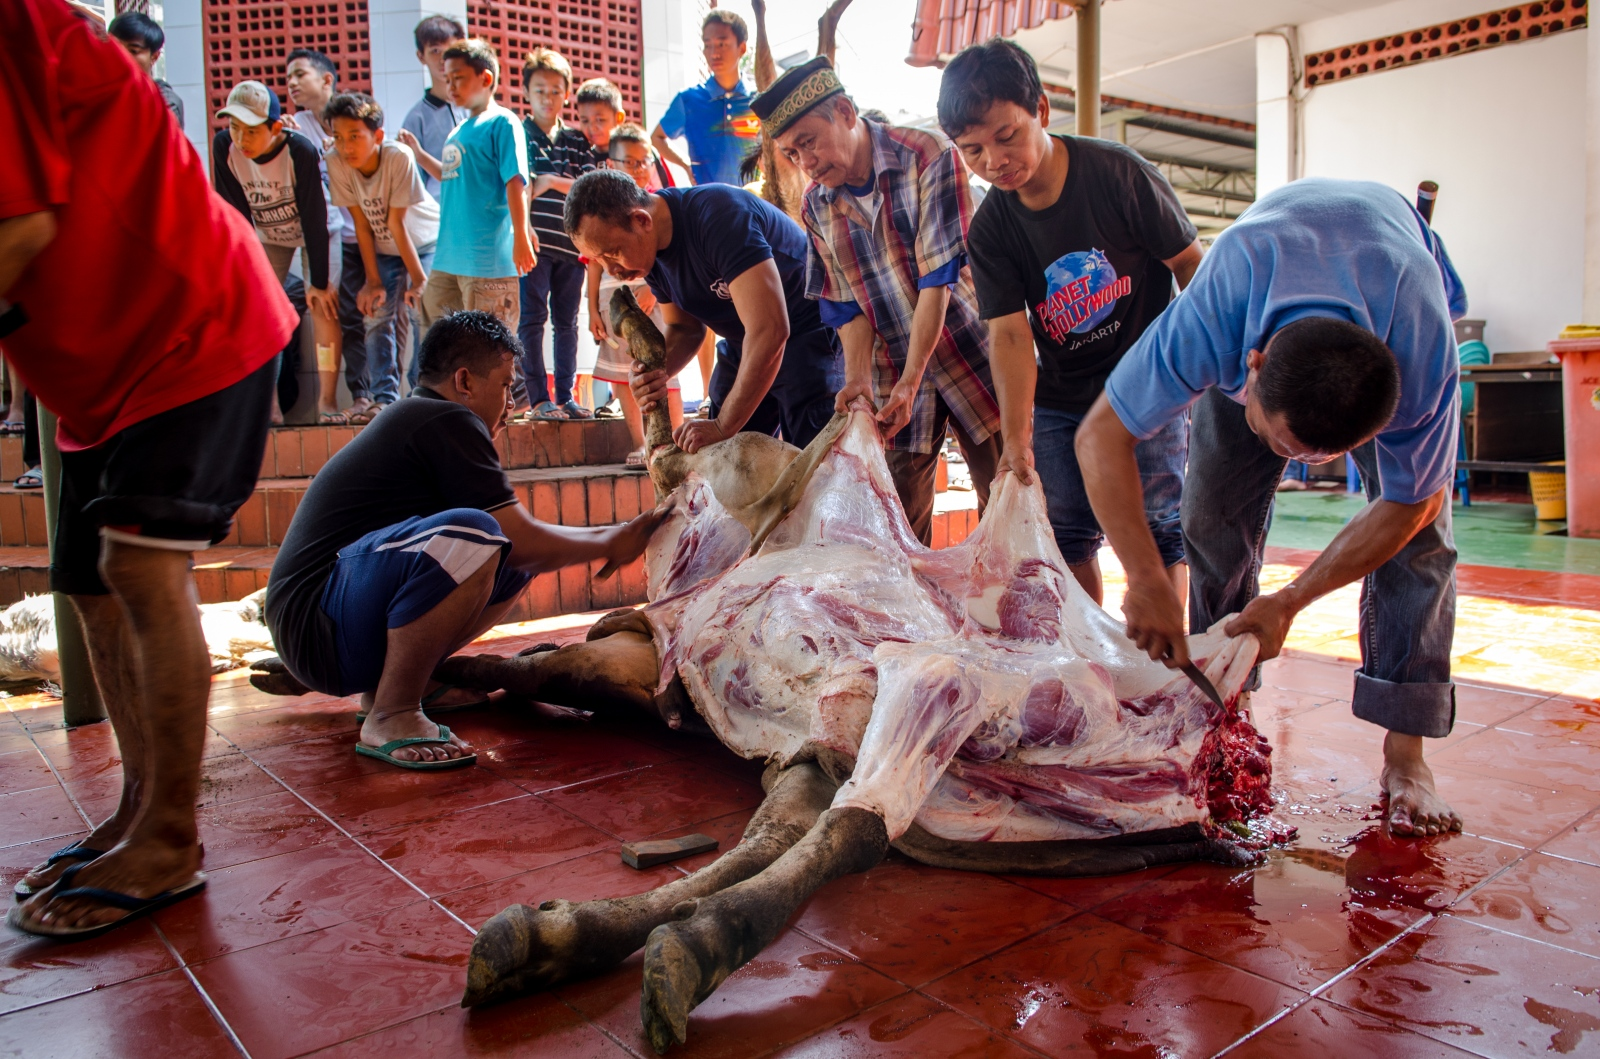 During a sacrifice, no part of the animal is wasted.  Butchering is done tactfully as they work to maintain the honor of the sacred creature.  The only parts of a sacrificed animal that will not be eaten are genitals, bladder, gall bladder and flowing blood.